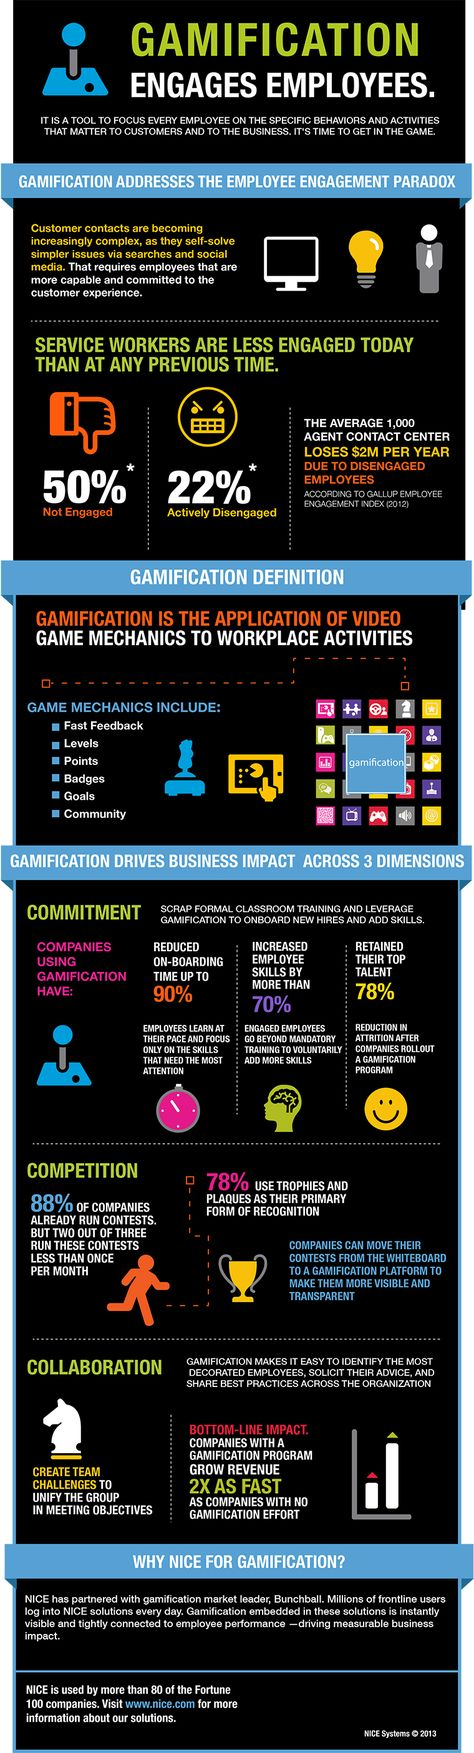 gamification in 2012 In today's best of enterprise gamification in 2012 feature, we look at some of the top stories in workspace engagement, strategy, and loyalty for businesses.